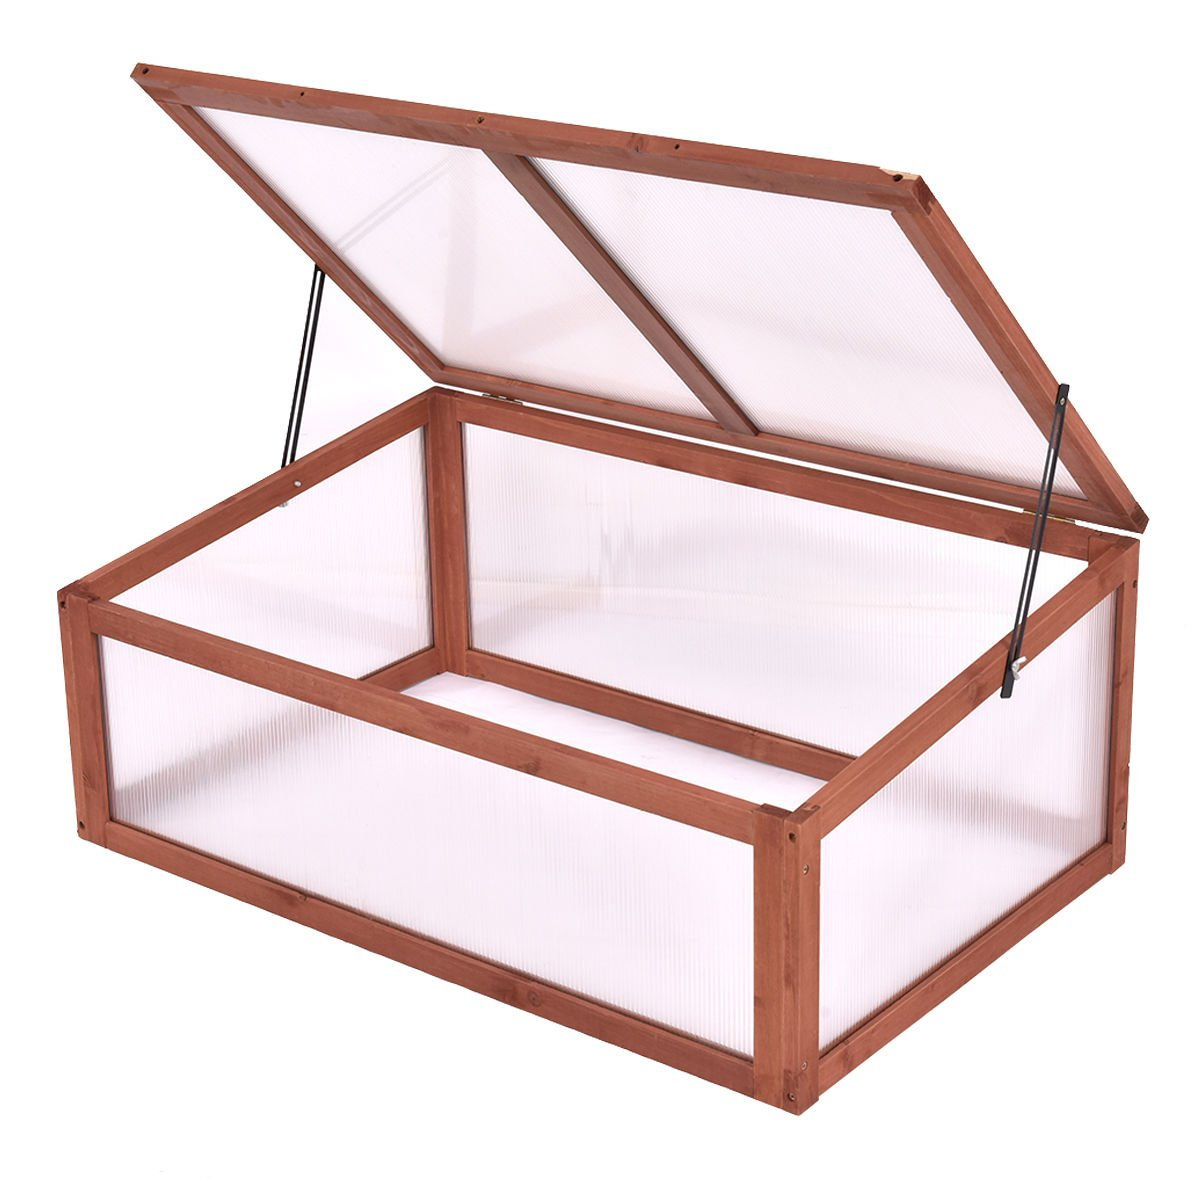 Garden Portable Wooden Raised Plants Full Green House Cold Frame Bed Protection Outdoors for mini by Heaven Tvcz (Image #4)